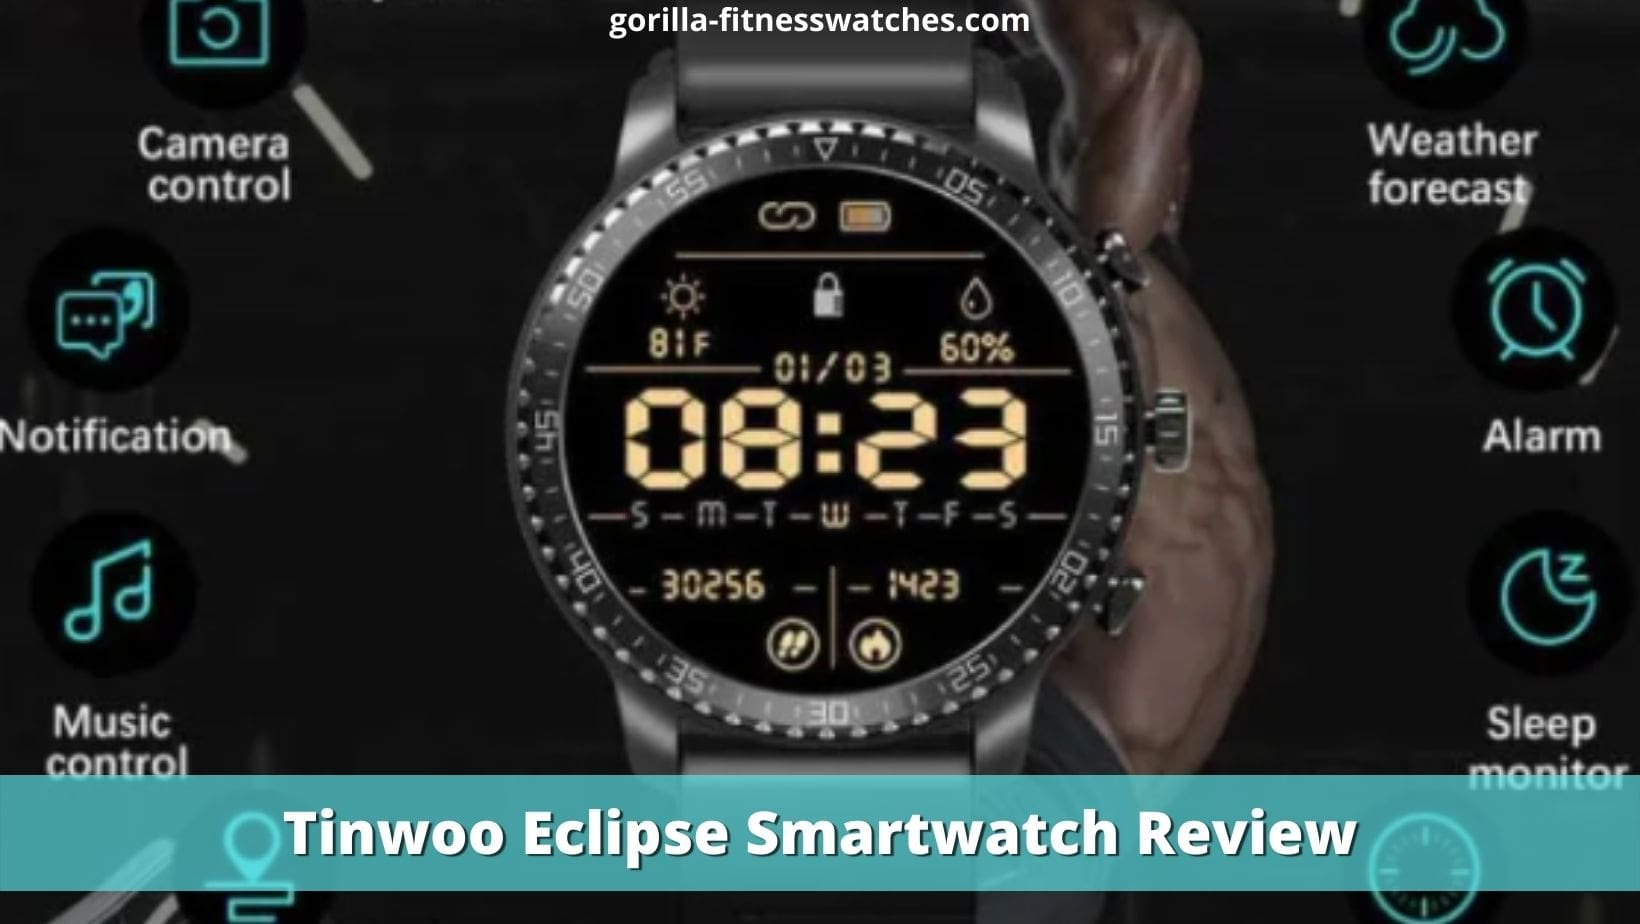 Tinwoo Eclipse Smartwatch Review